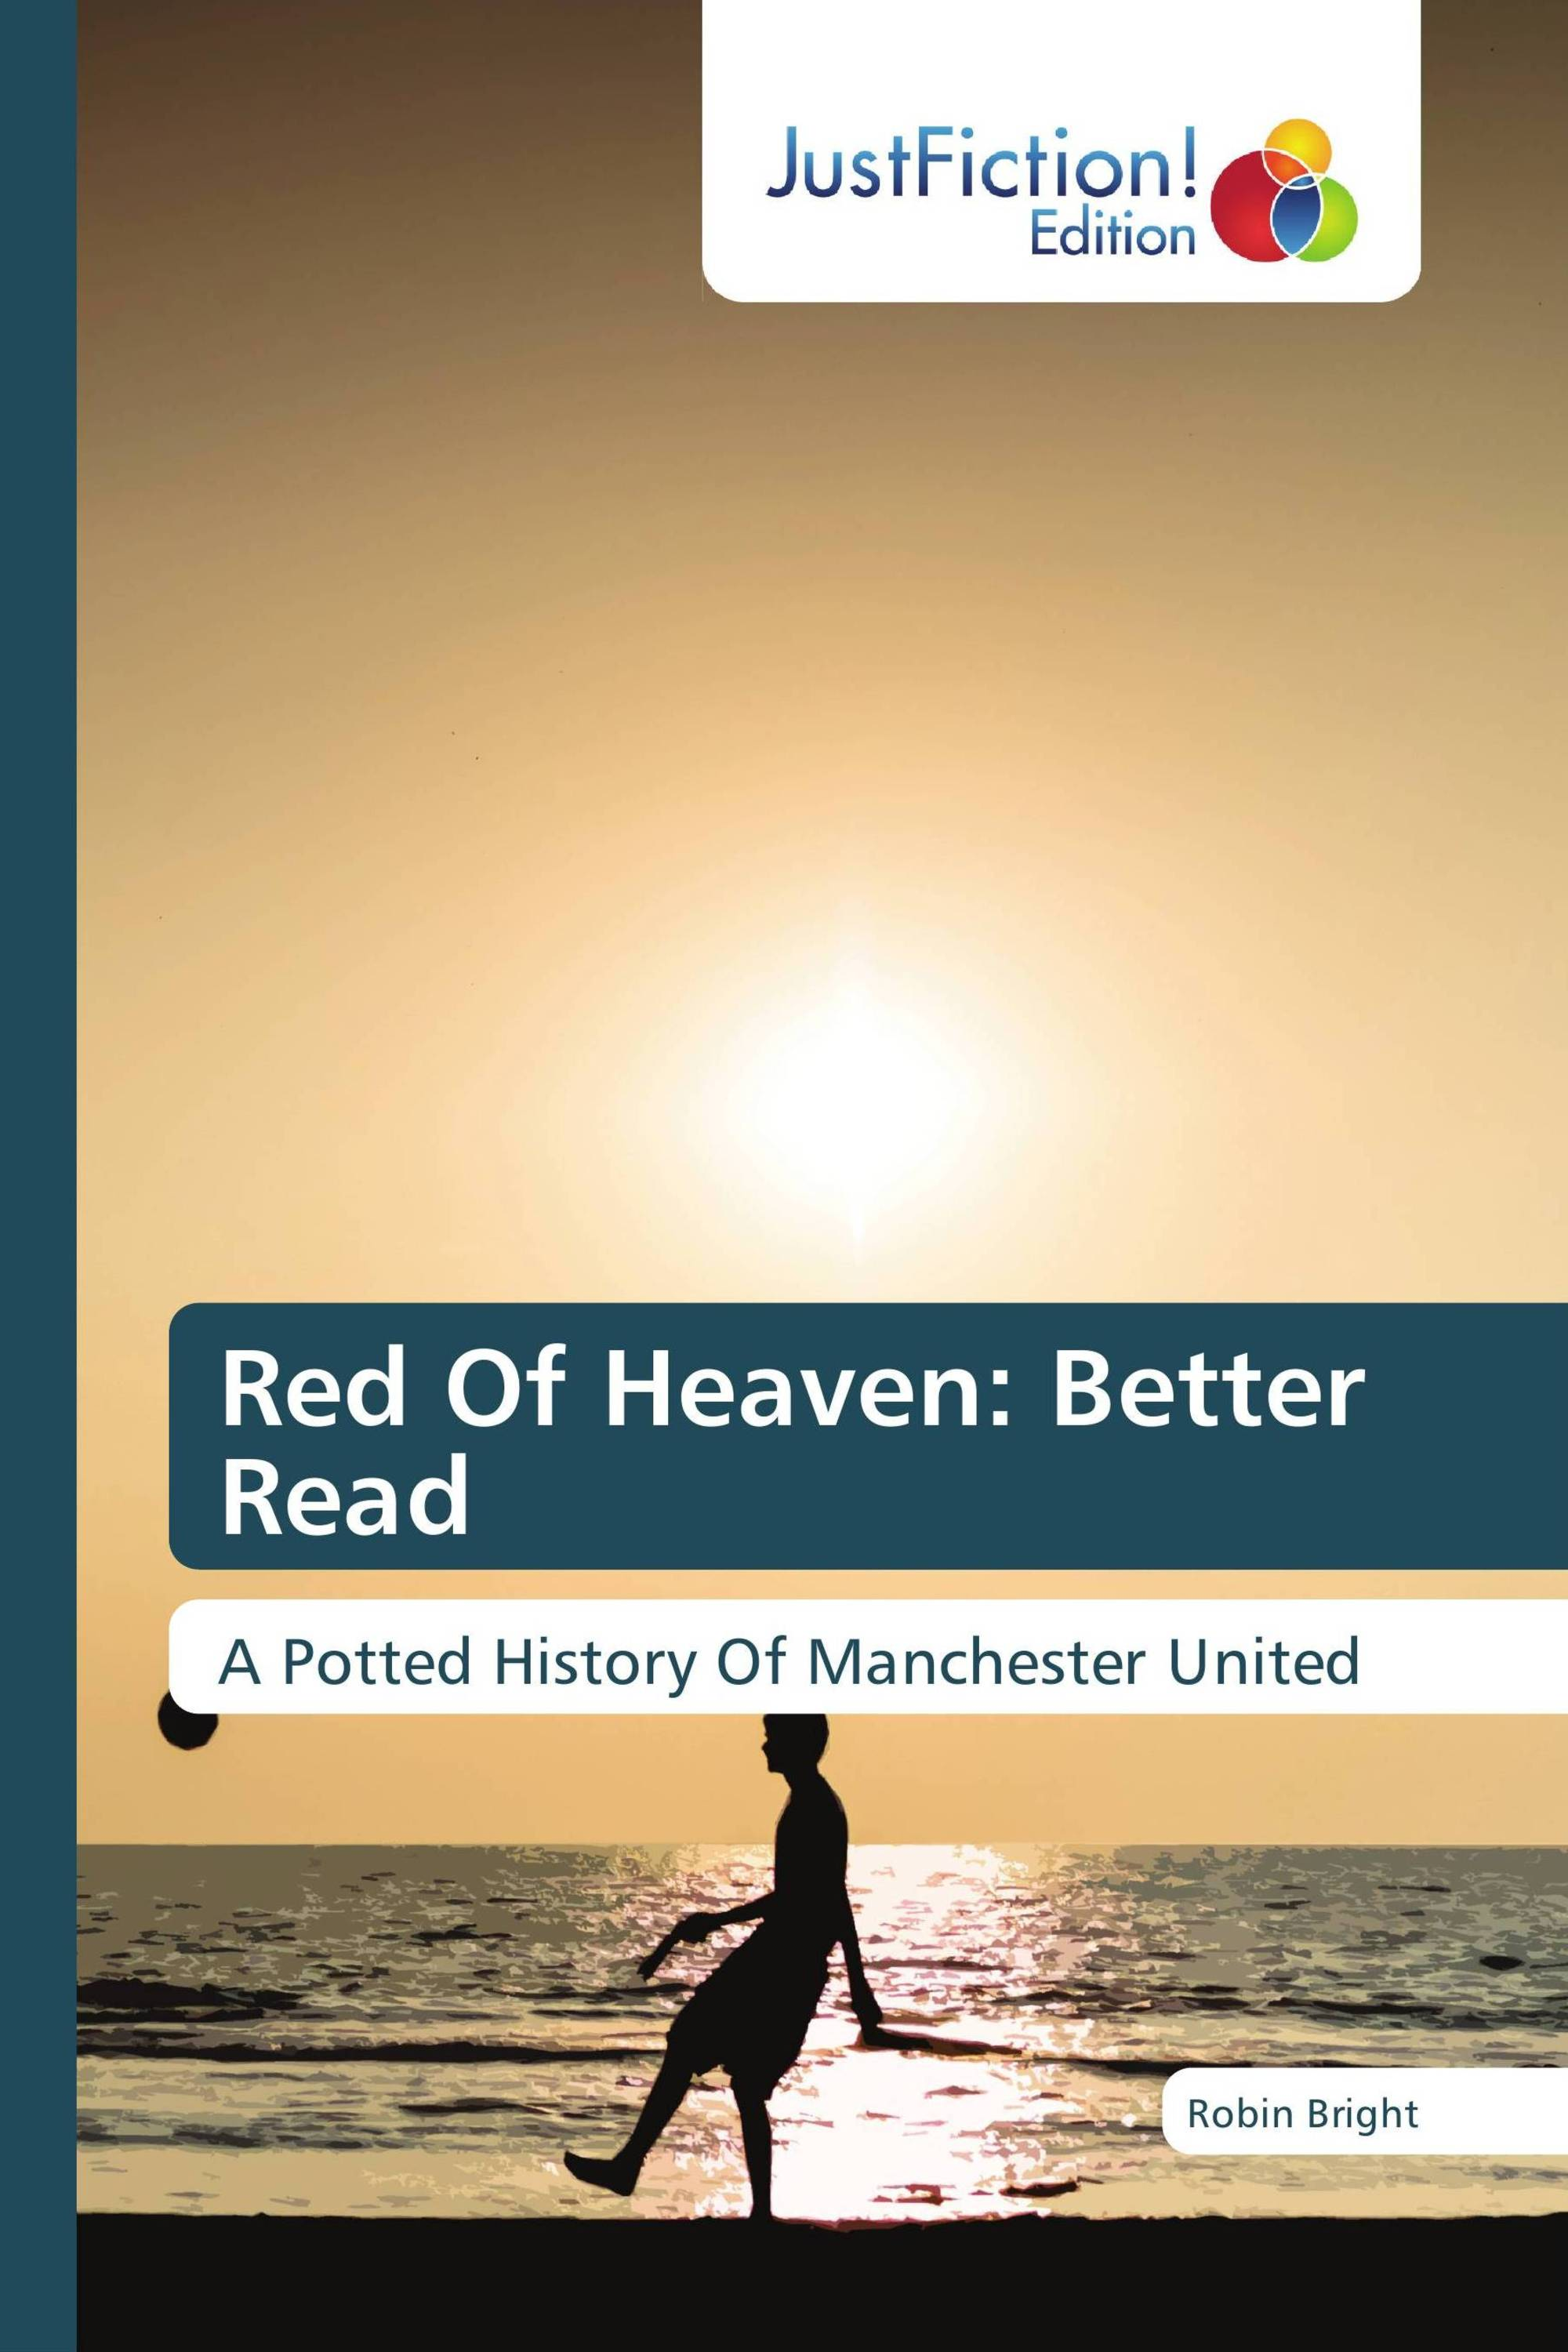 Red Of Heaven: Better Read